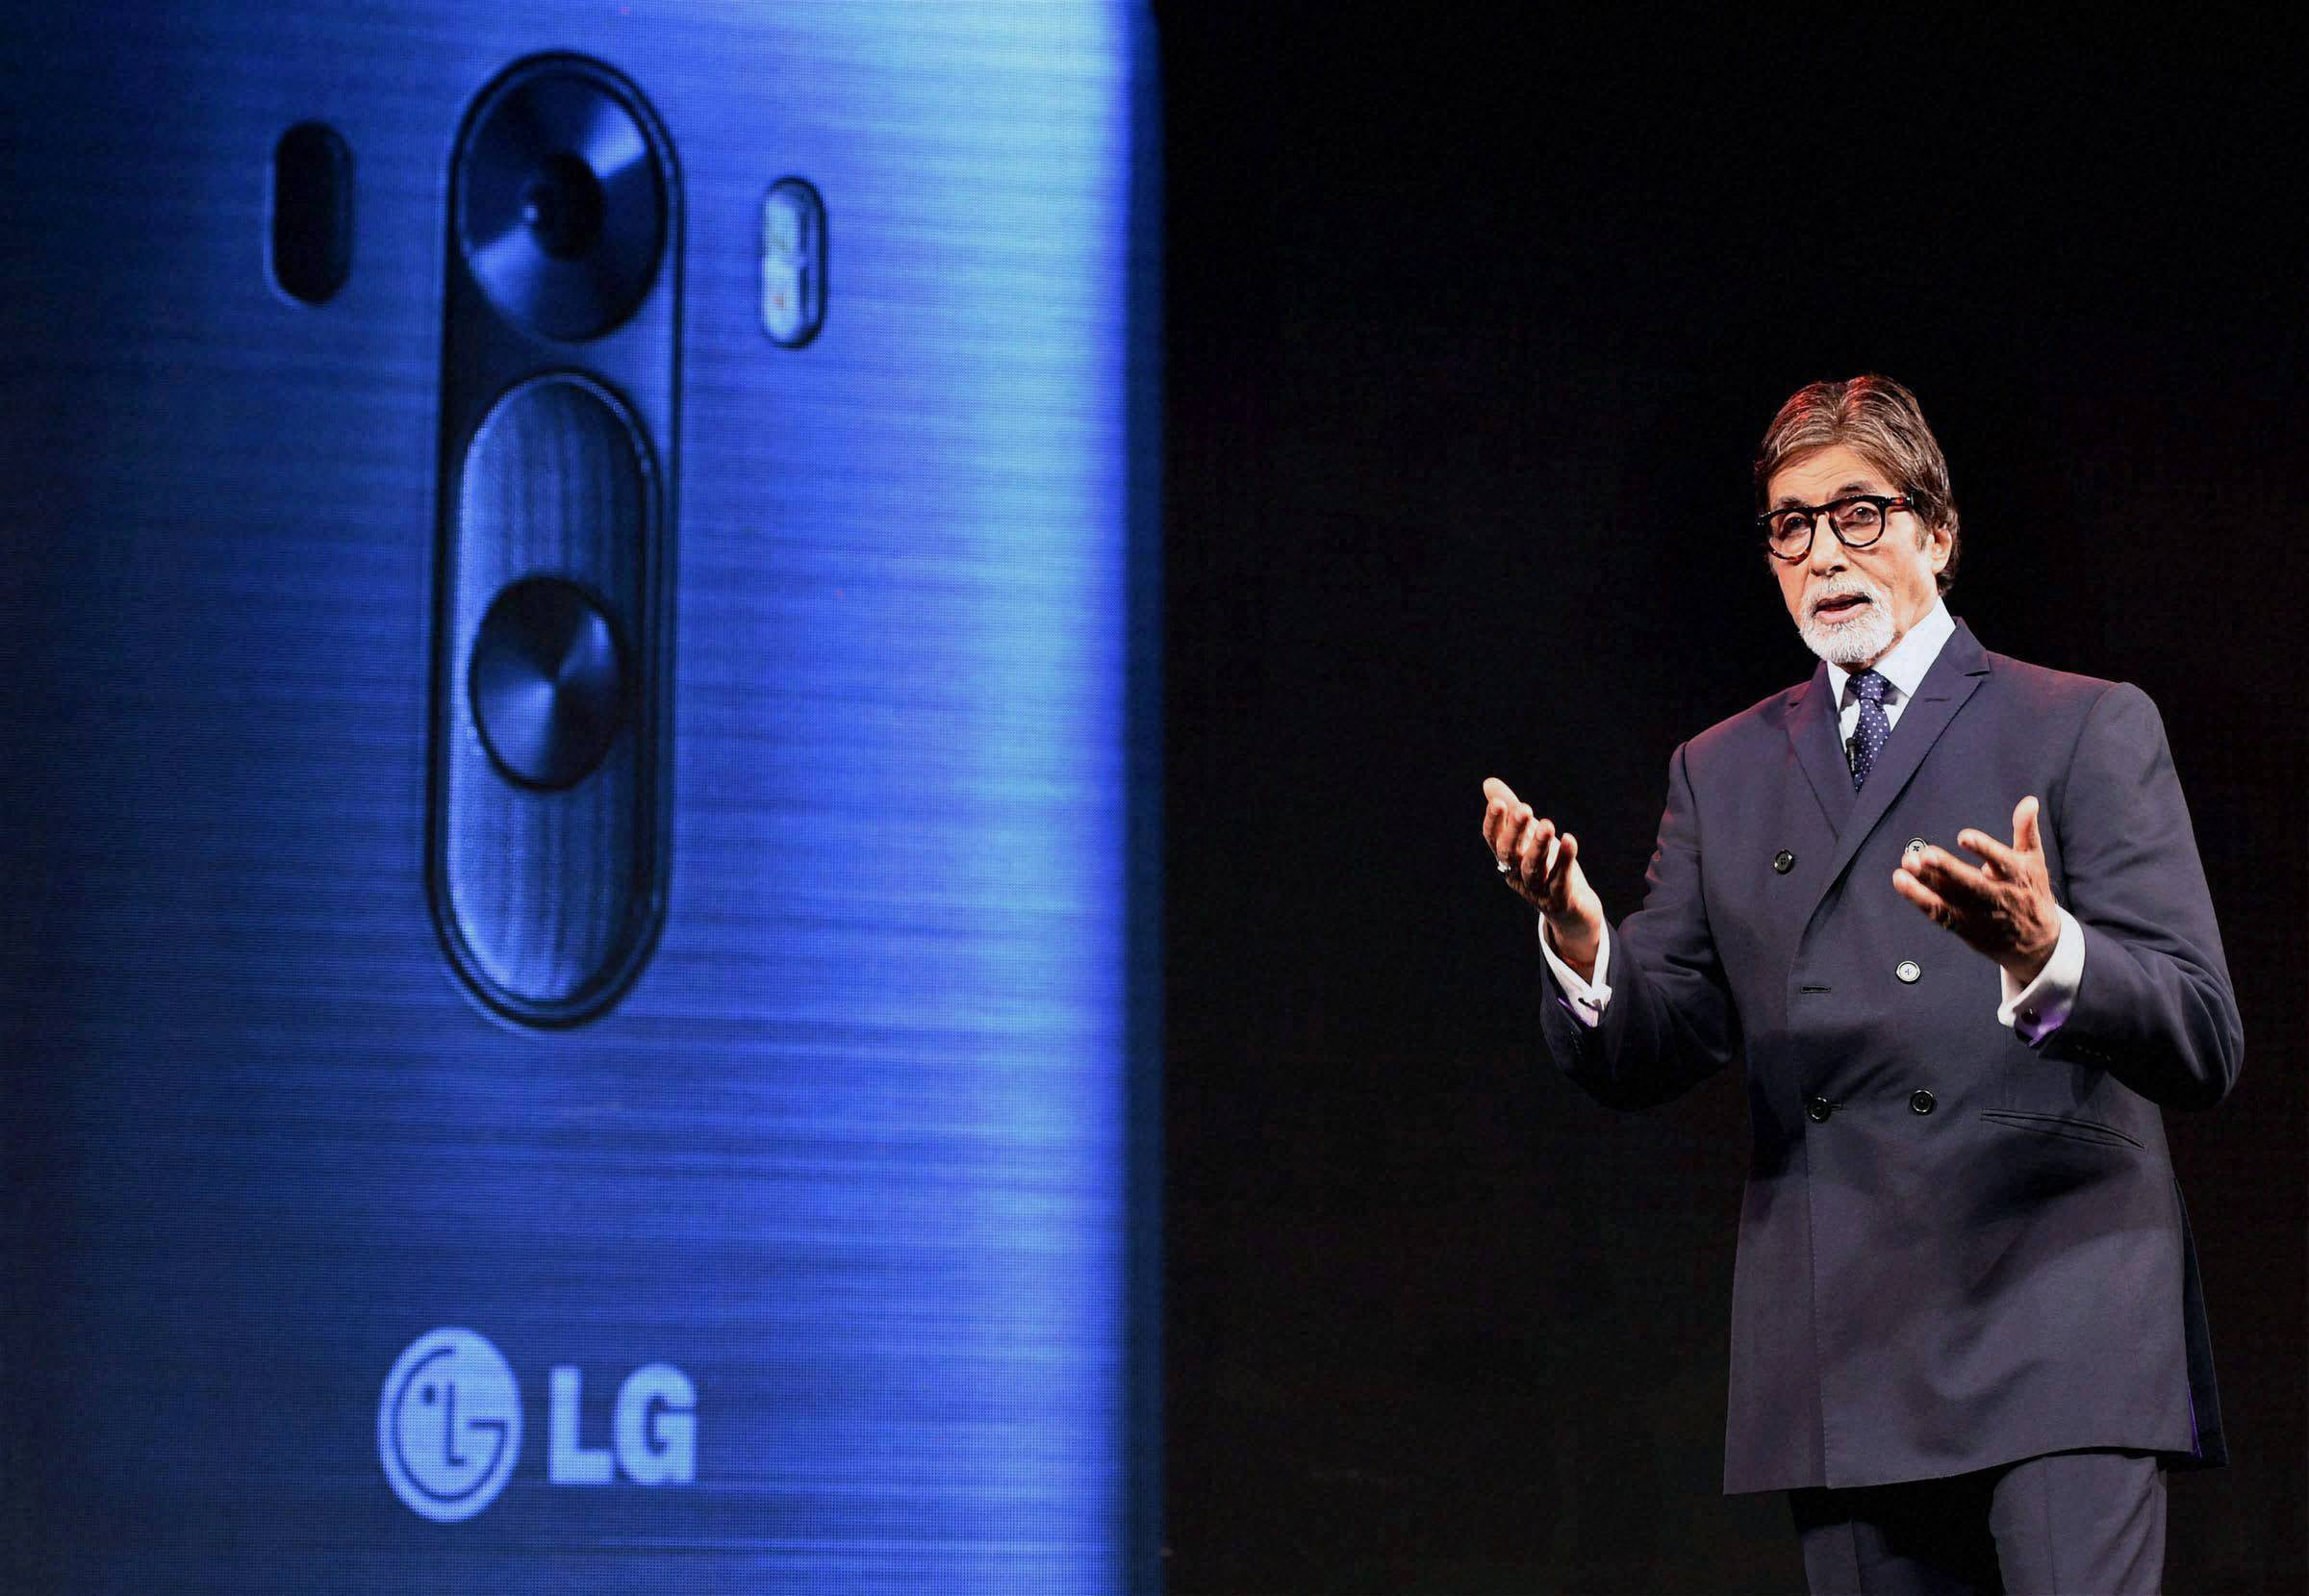 Bollywood actor, Amitabh Bachchan, launch, LG G3 Smartphone, Mumbai